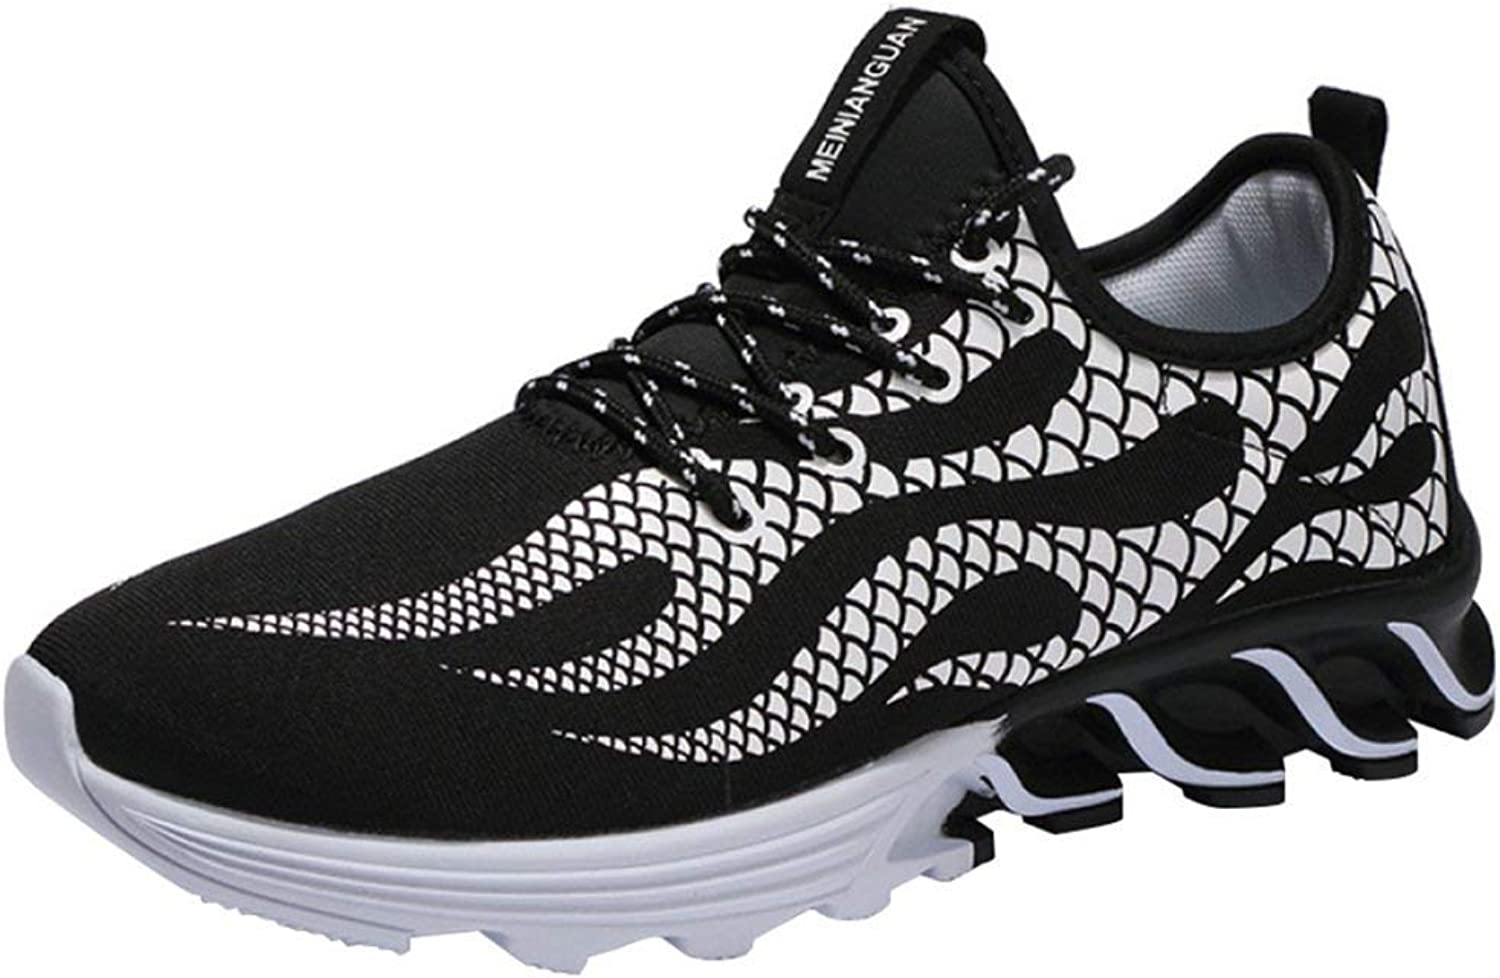 official photos eed1c 282fa Sommer Herrenschuhe Trend Laufschuhe Sportschuhe Sportschuhe Sportschuhe  Mesh Schuhe Herren Messer Schuhe, Herren Sportschuhe (Farbe 388schwarz, ...